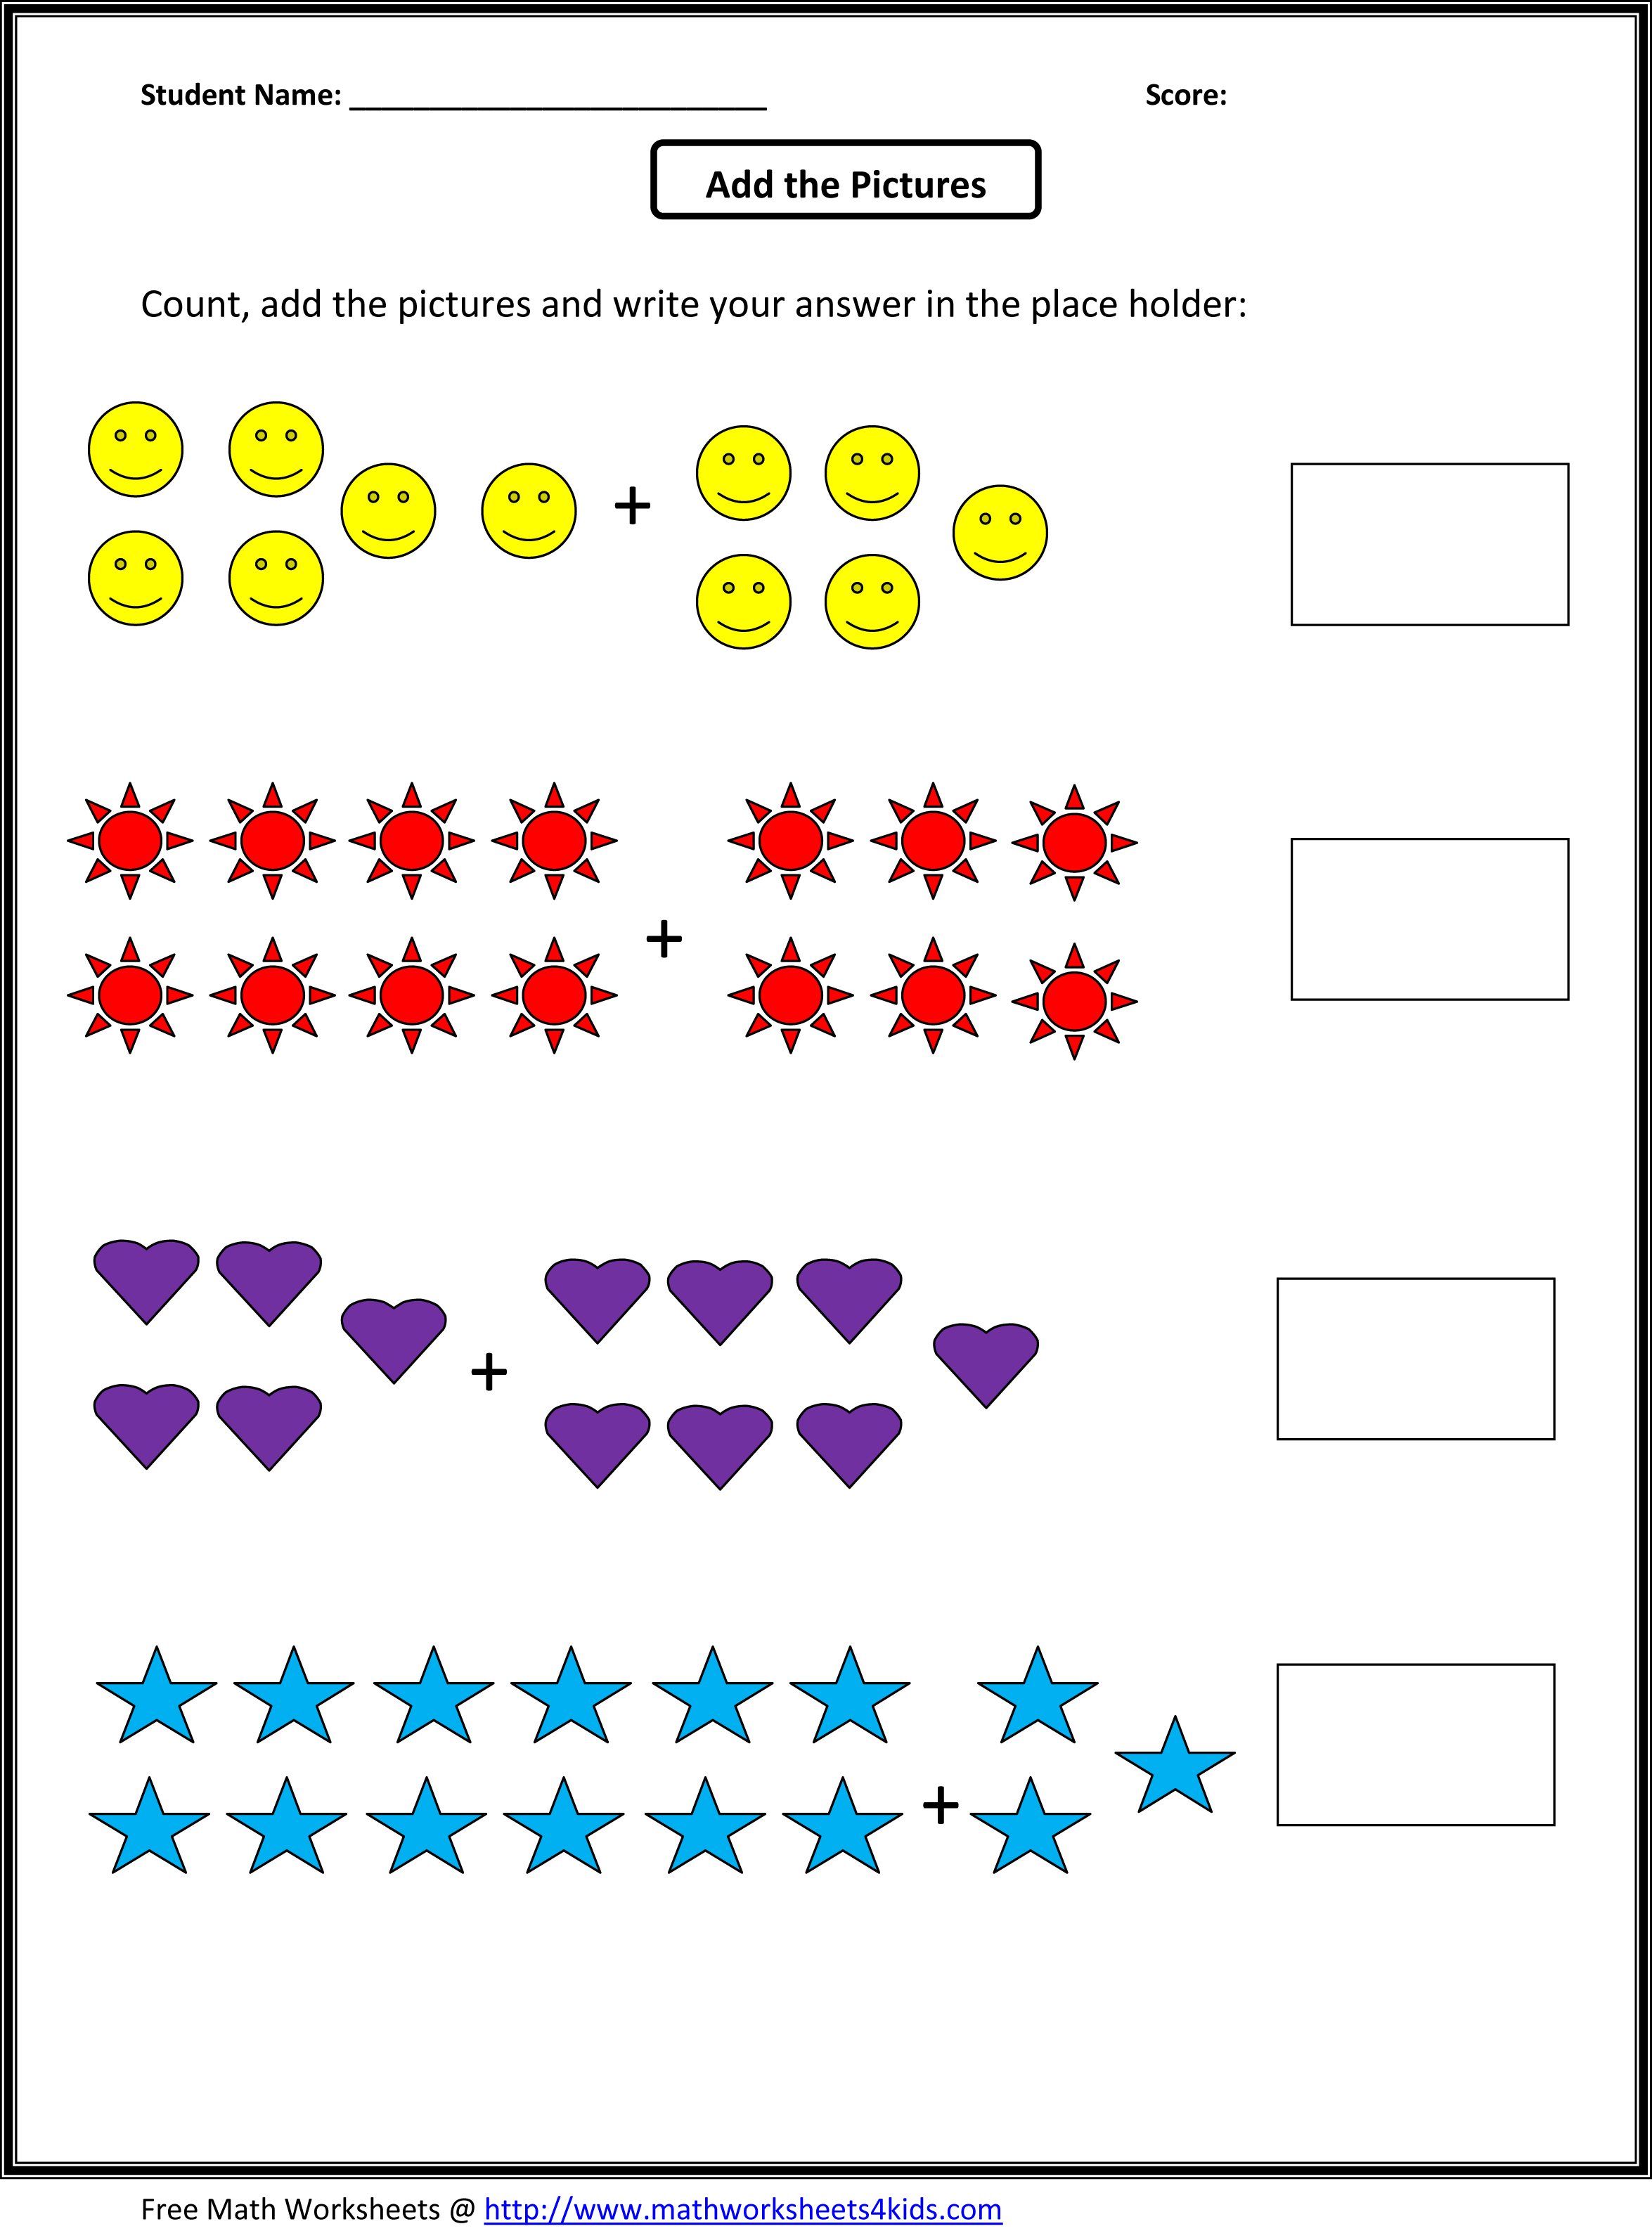 Weirdmailus  Picturesque Grade  Maths Worksheet  Reocurent With Foxy Math Worksheets For St Grade Free  Reocurent With Lovely Counting Math Worksheets For Kindergarten Also Desert Animals Worksheets In Addition Free Printable Math Worksheets For Nd Grade Addition And  Food Groups Worksheet As Well As Worksheets On Meiosis Additionally More Than Less Than Worksheets Kindergarten From Reocurentcom With Weirdmailus  Foxy Grade  Maths Worksheet  Reocurent With Lovely Math Worksheets For St Grade Free  Reocurent And Picturesque Counting Math Worksheets For Kindergarten Also Desert Animals Worksheets In Addition Free Printable Math Worksheets For Nd Grade Addition From Reocurentcom